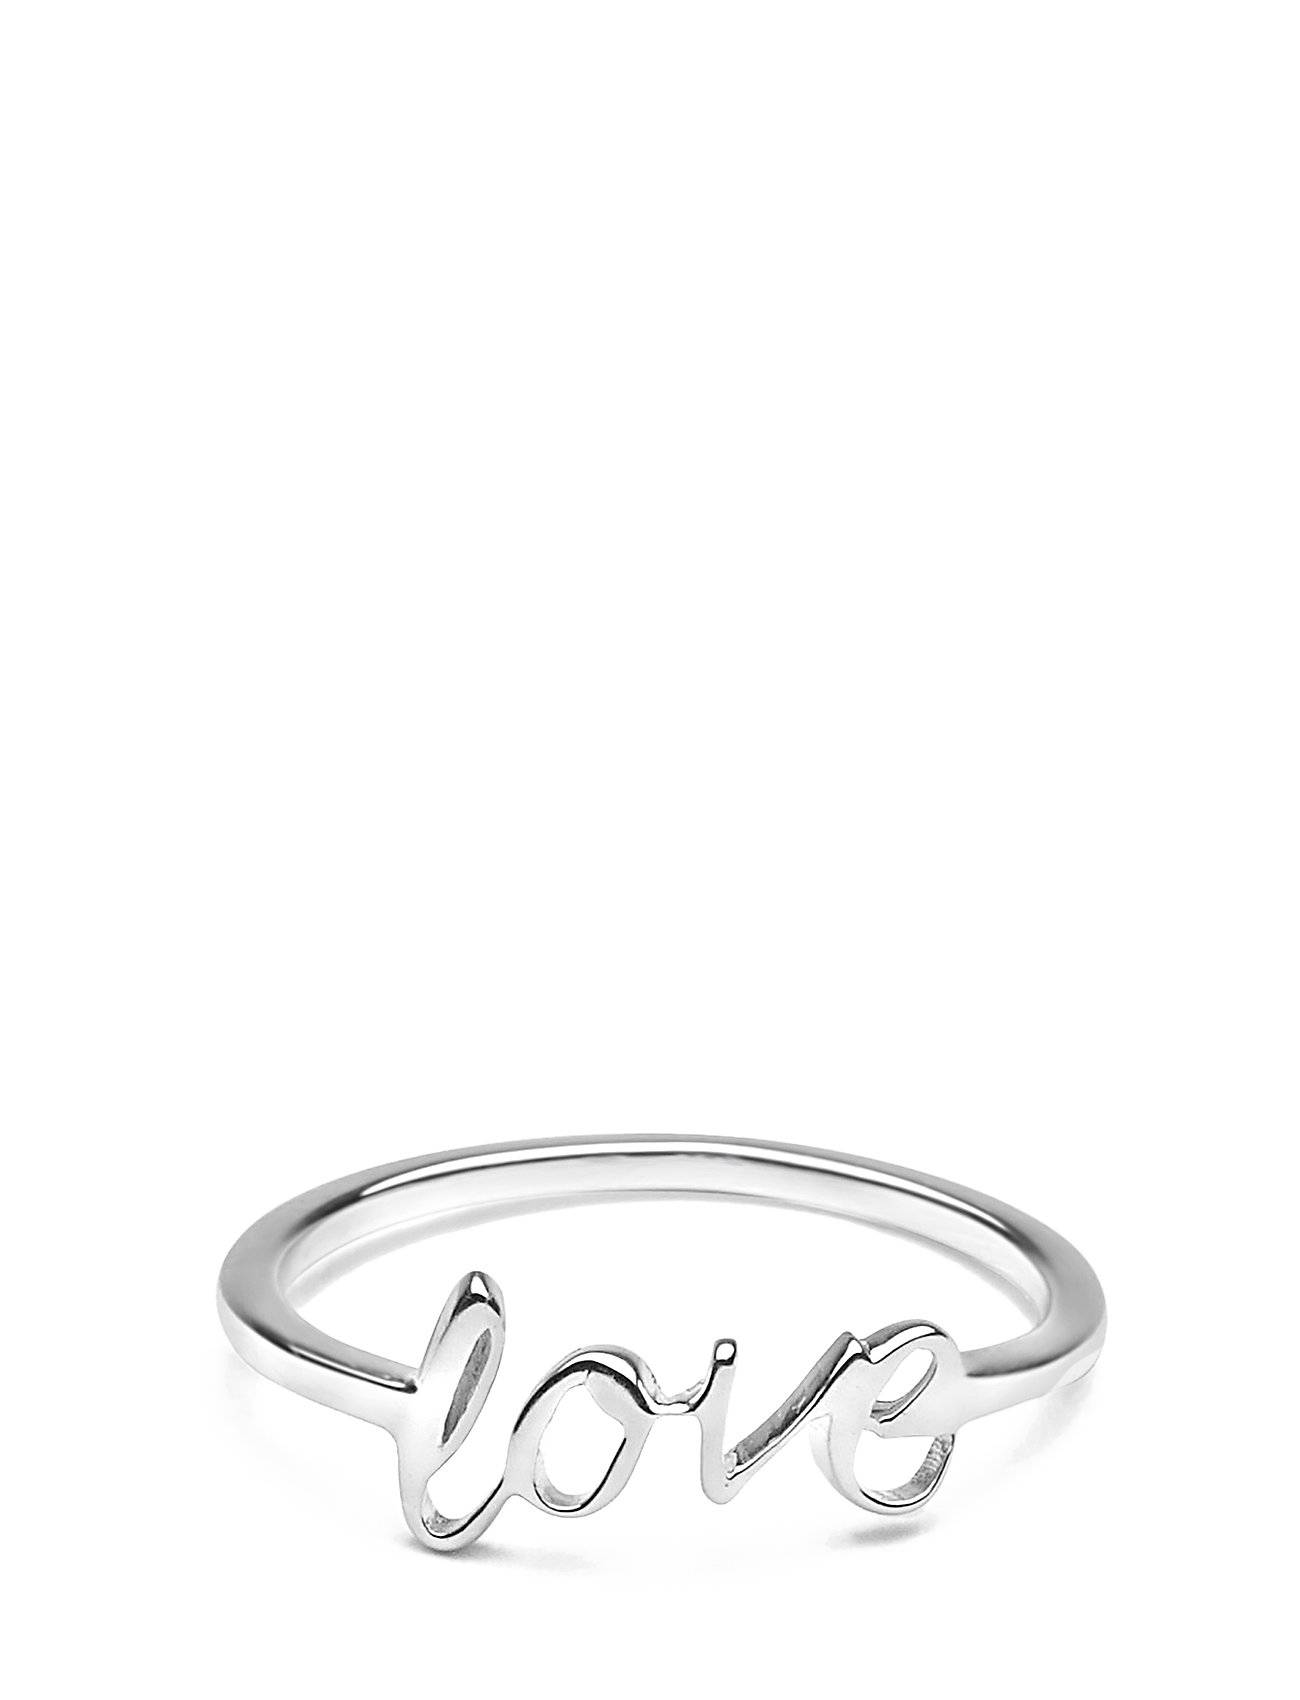 Syster P Snap Ring Love Silver Sormus Korut Hopea Syster P